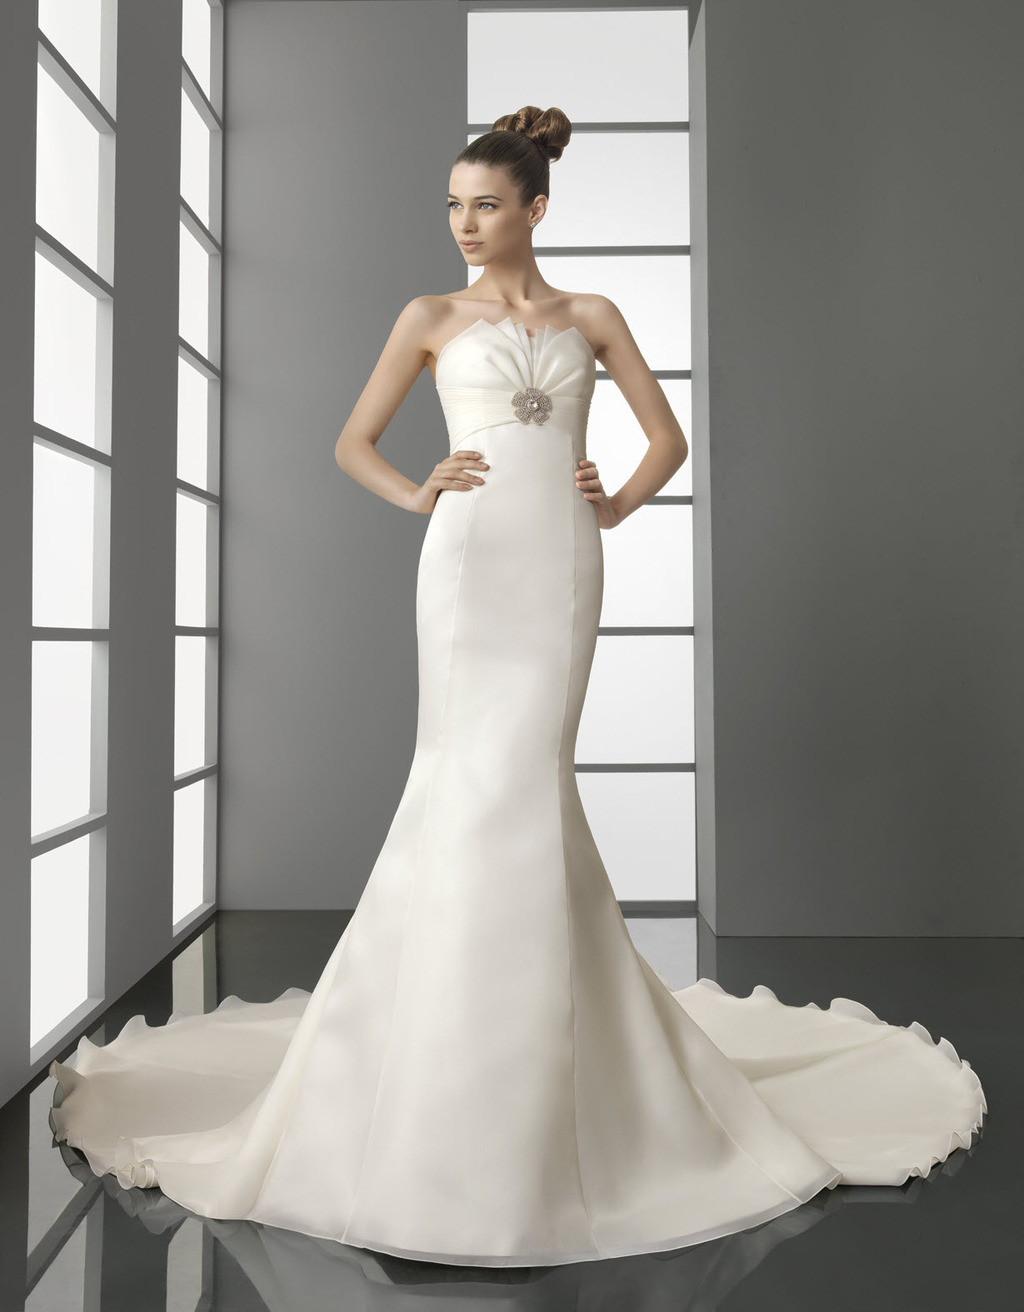 Peculiar-spring-2012-wedding-dress-ivory-mermaid-bridal-gown-aire-barcelona.full